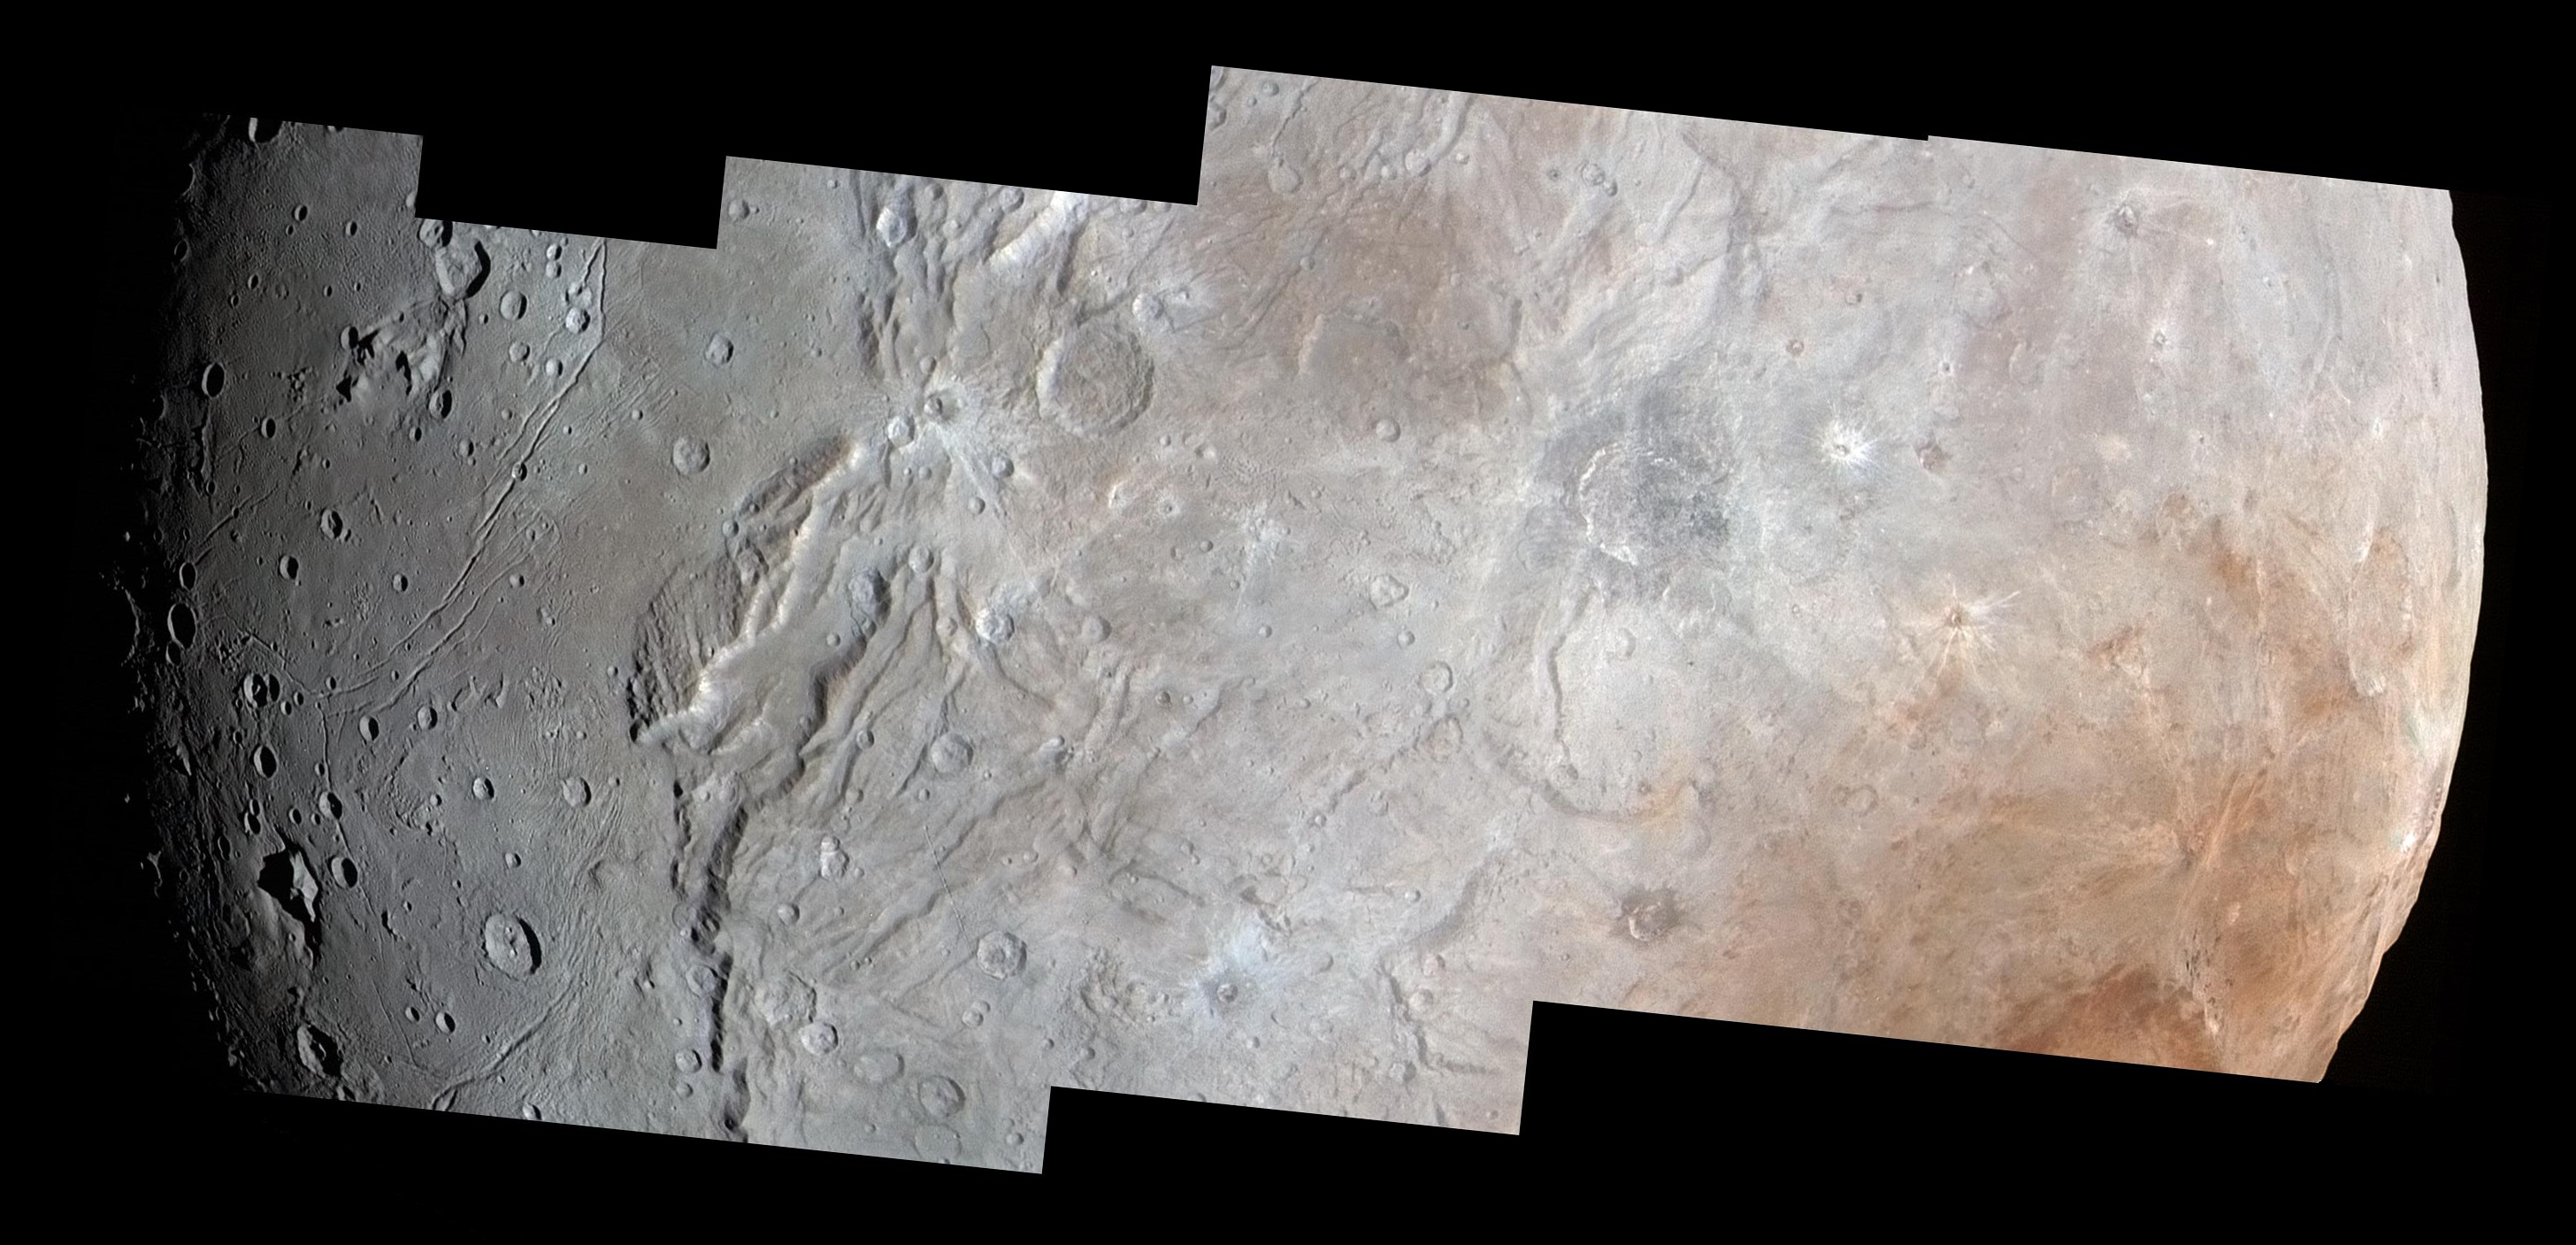 High-resolution images of Charon were taken by the Long Range Reconnaissance Imager (LORRI) on NASA's New Horizons spacecraft, shortly before closest approach on 14 July 2015, and overlaid with enhanced colour from the Ralph/Multispectral Visual Imaging Camera (MVIC). Charon's cratered uplands at the right are broken by series of canyons, and replaced on the left (south) by the rolling plains of the informally named Vulcan Planum. The scene covers Charon's width of 754 miles (1,214 kilometres) and resolves details as small as 0.5 miles (0.8 kilometres). North is to the right. (Click to view full-size picture). Image credit: NASA/Johns Hopkins University Applied Physics Laboratory/Southwest Research Institute.